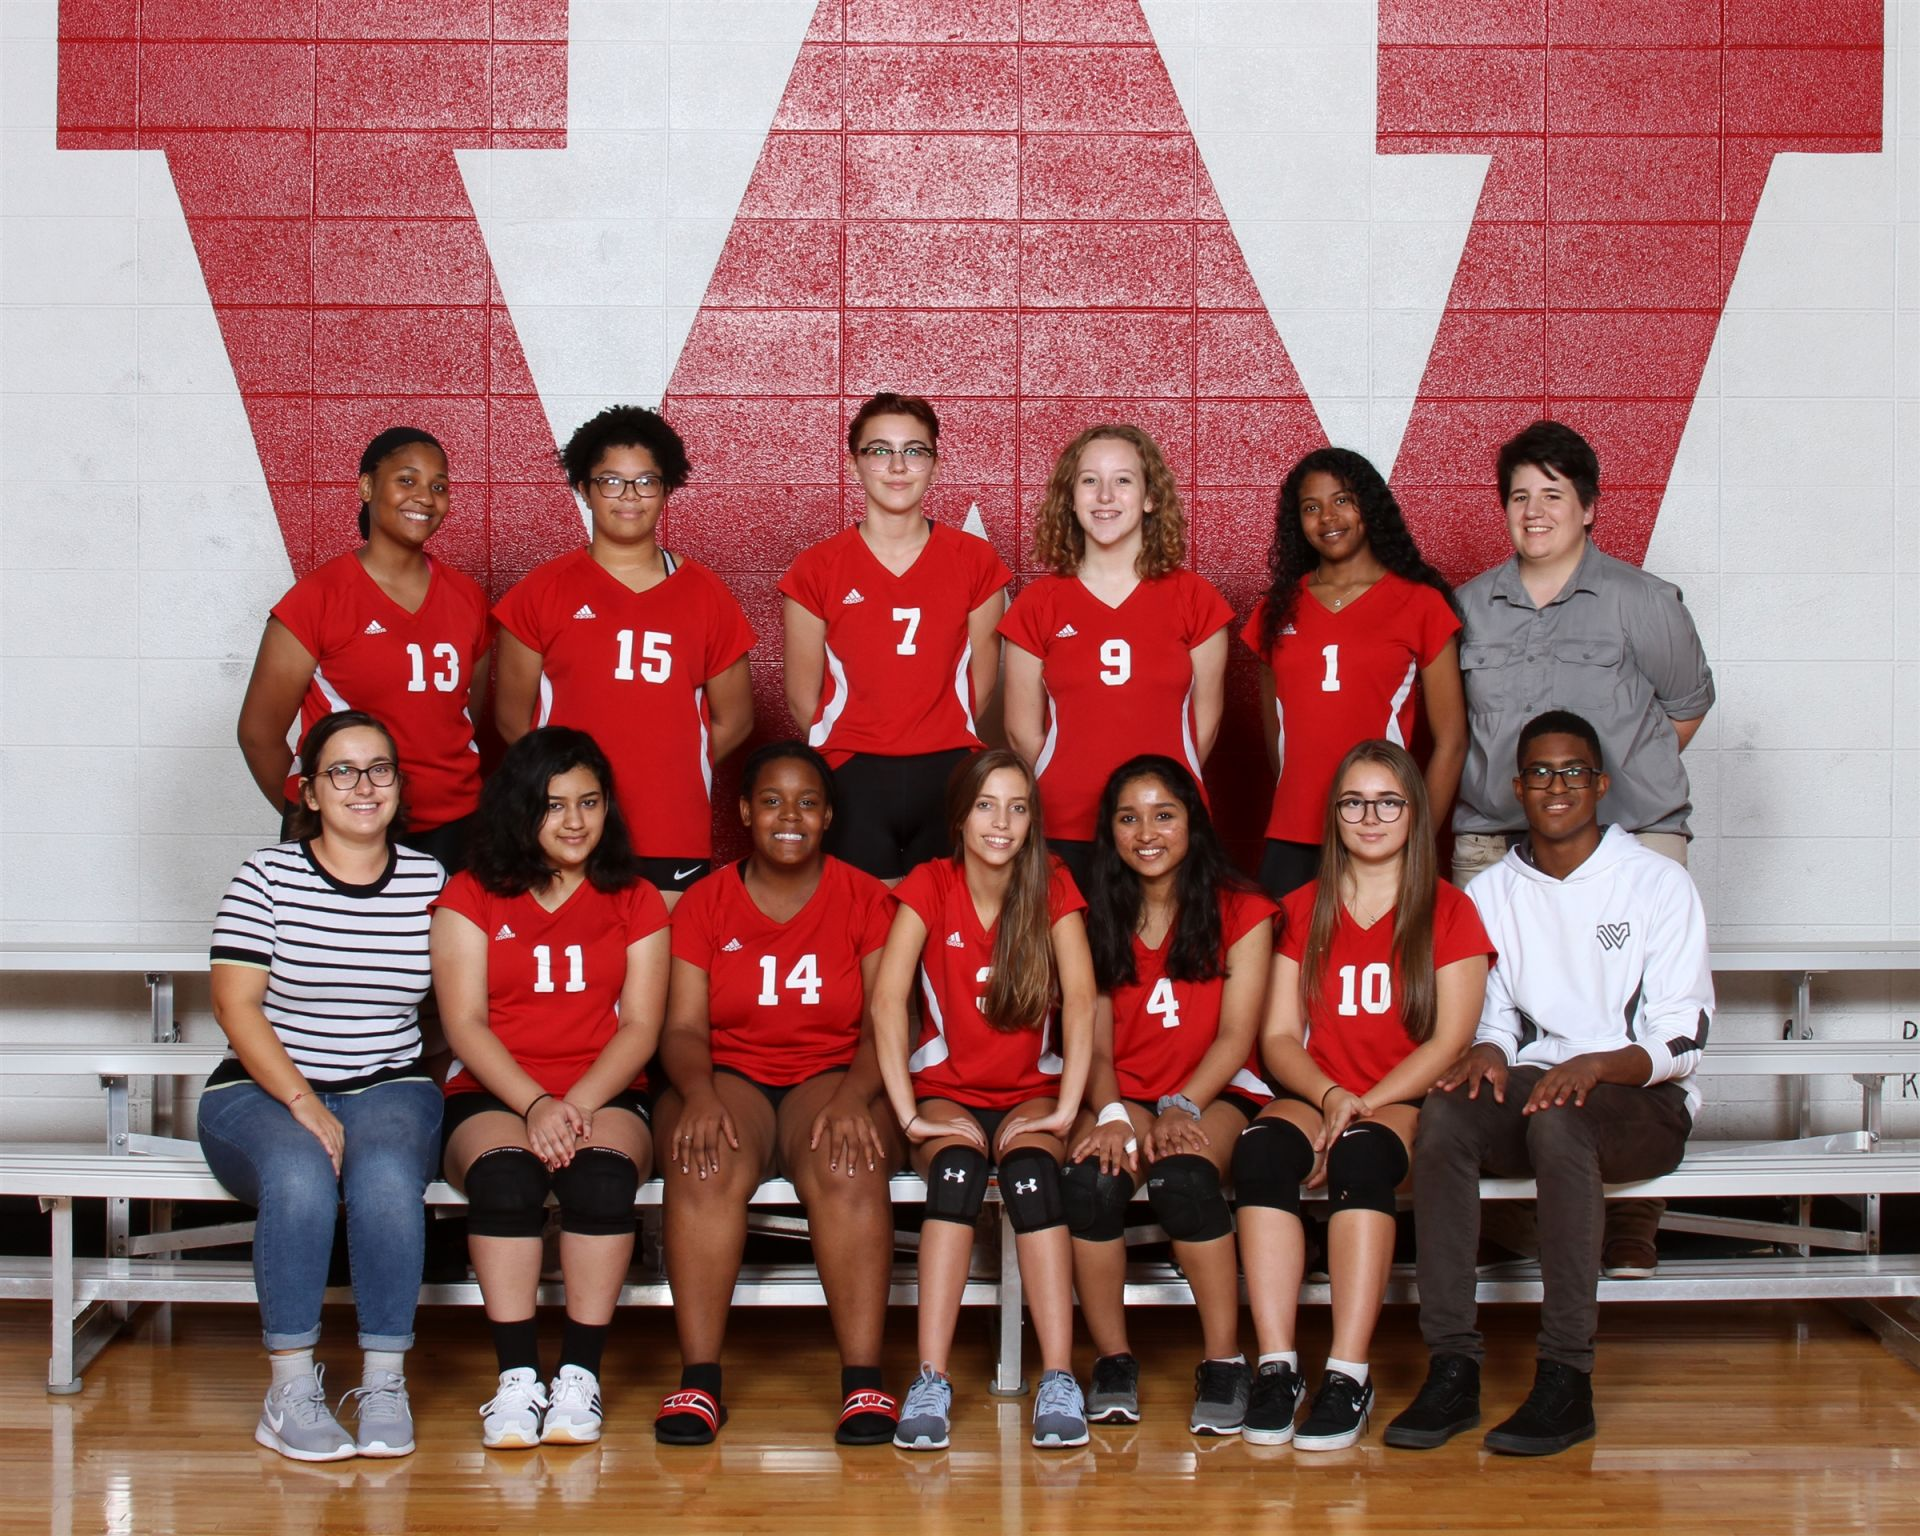 The 2018 Wayland Academy Junior Varsity 2 Girls Volleyball team.